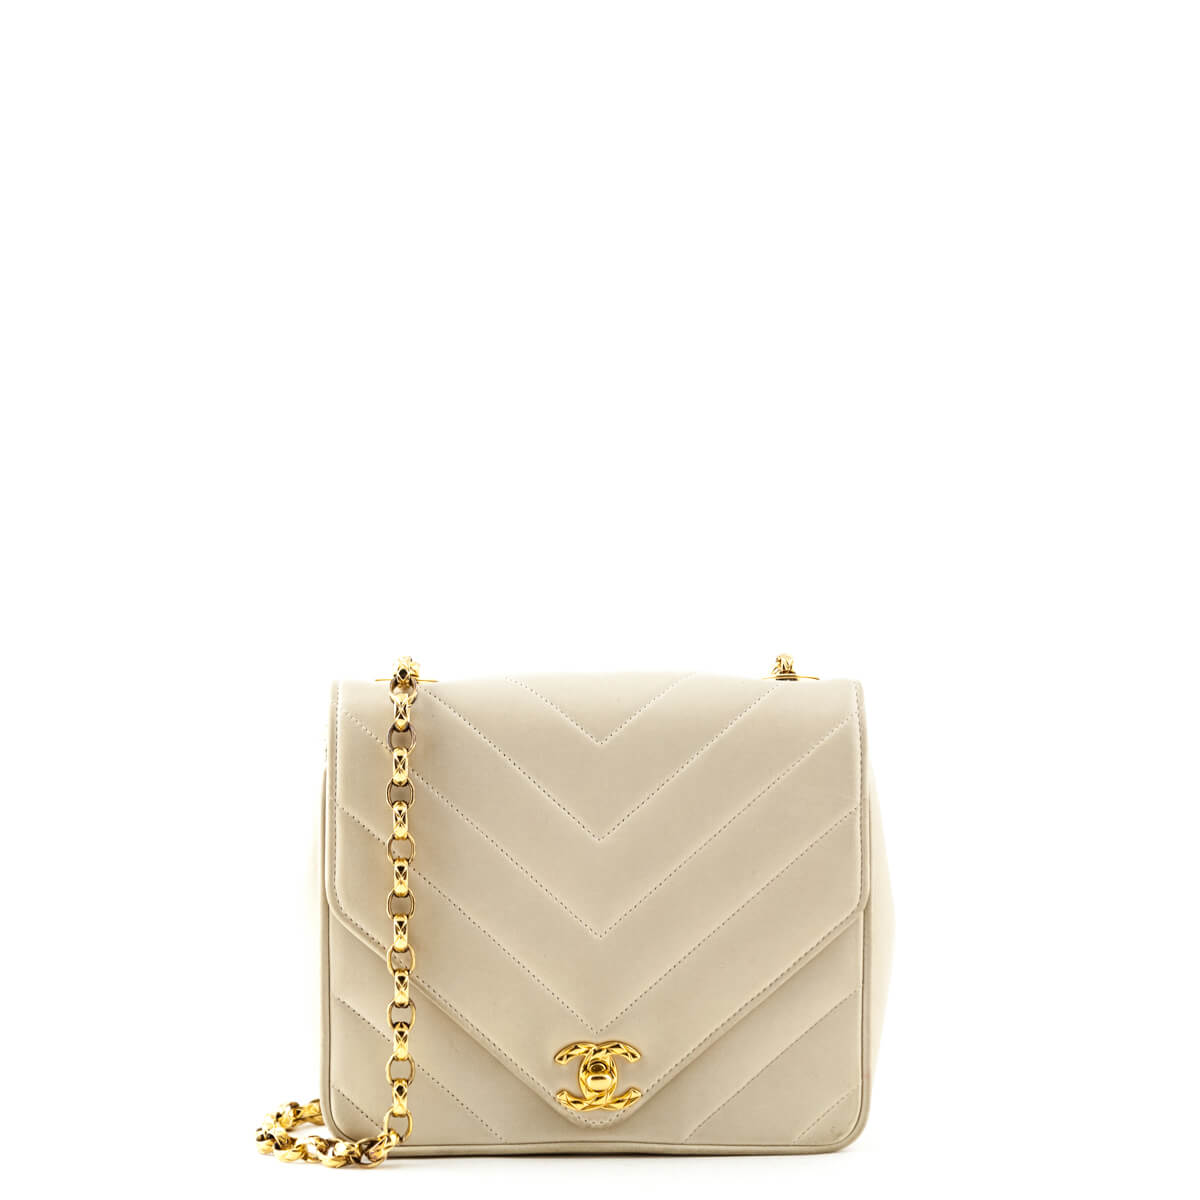 2e54728f9a632d Chanel Beige Chevron Quilted Lambskin Vintage Flap Bag - LOVE that BAG -  Preowned Authentic Designer ...